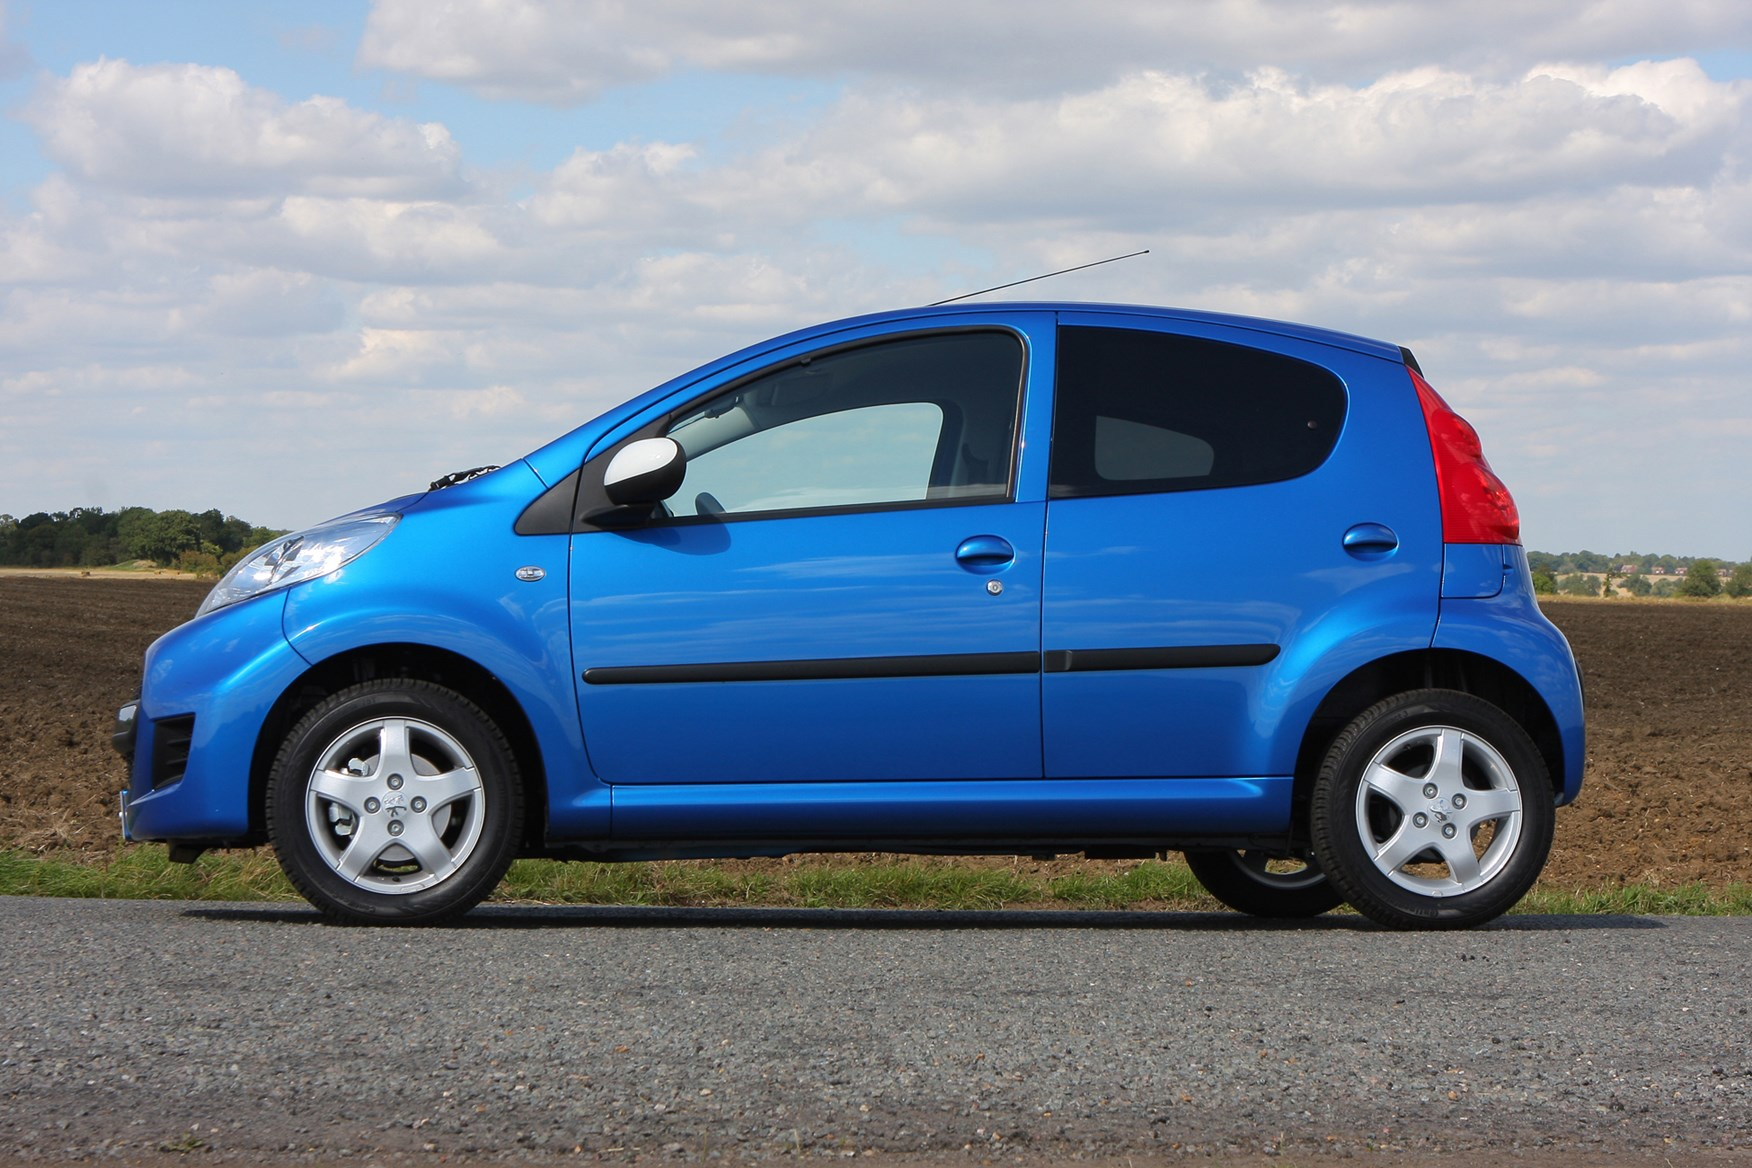 Used Peugeot 107 Hatchback (2005 - 2014) Engines | Parkers